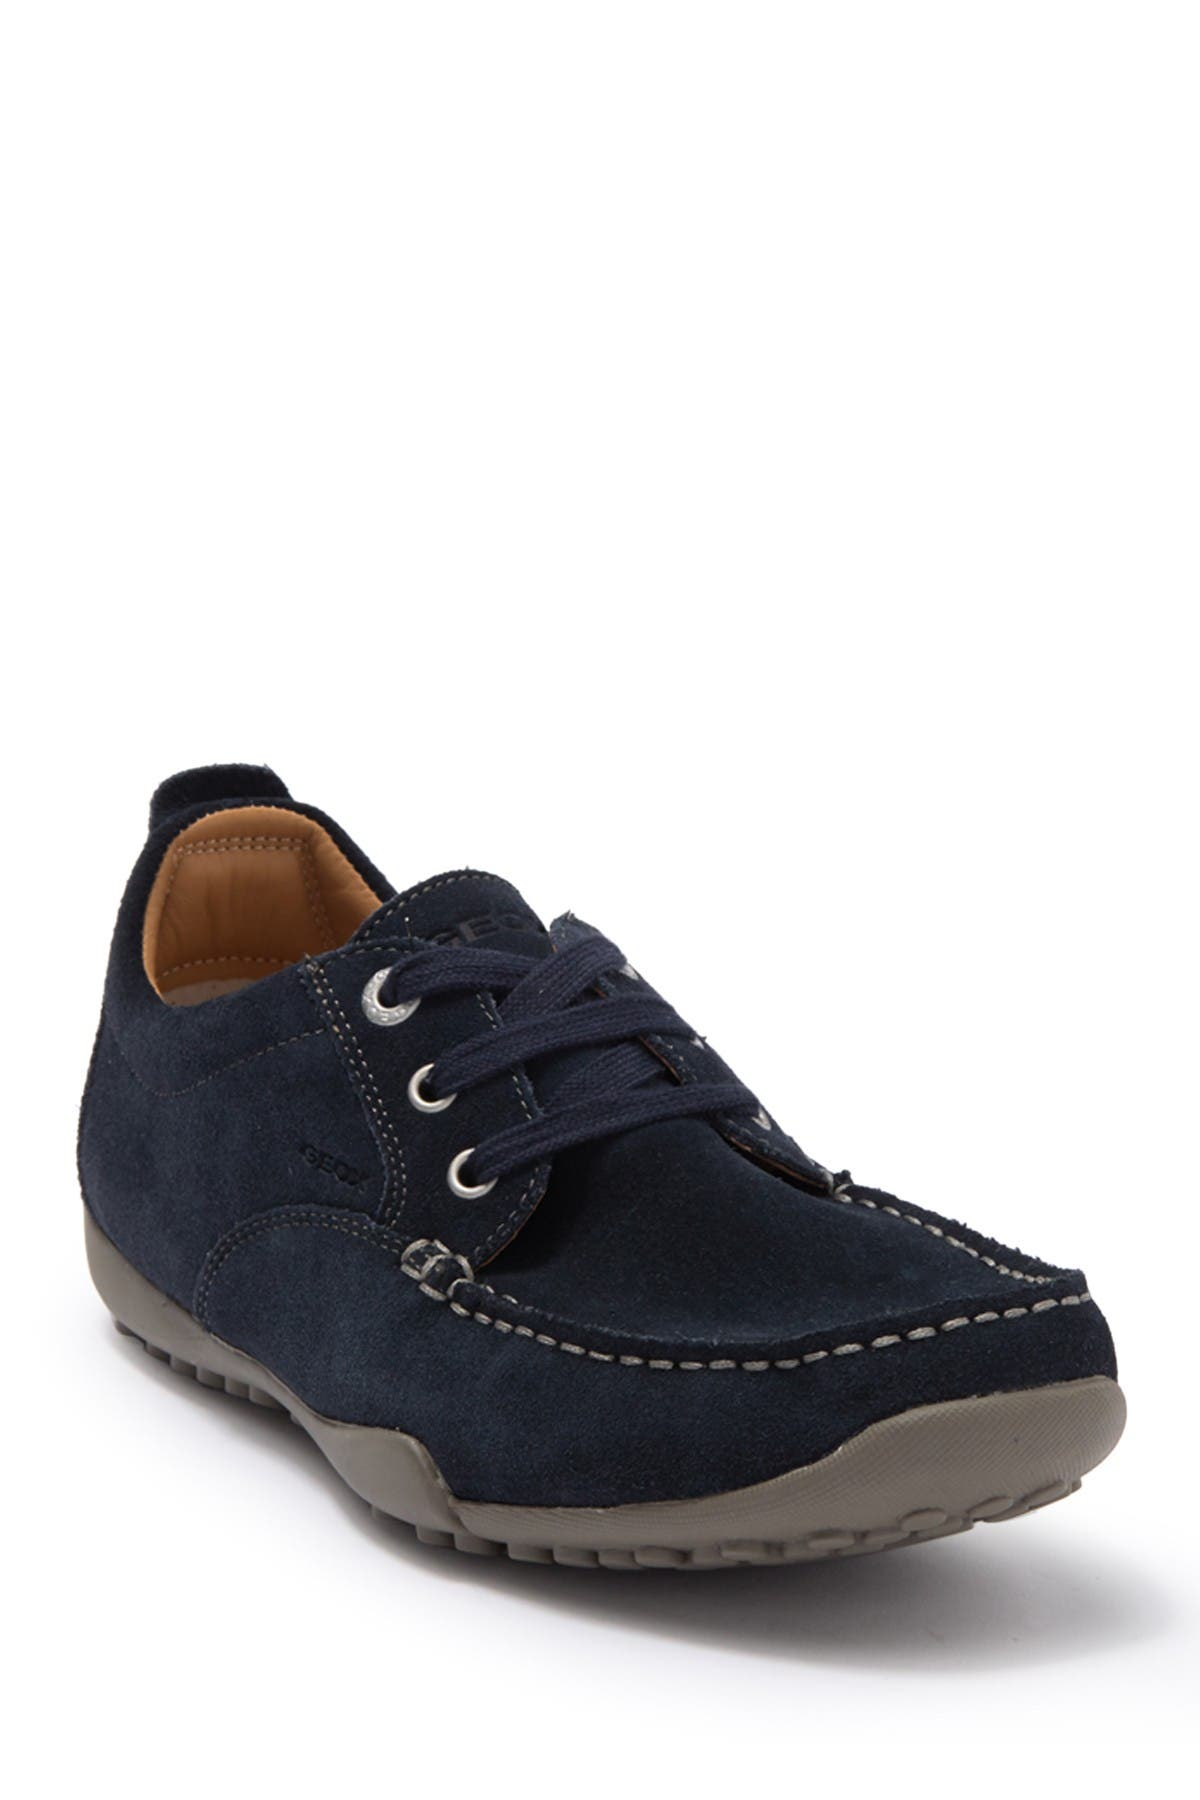 Image of GEOX Suede Driver Sneaker